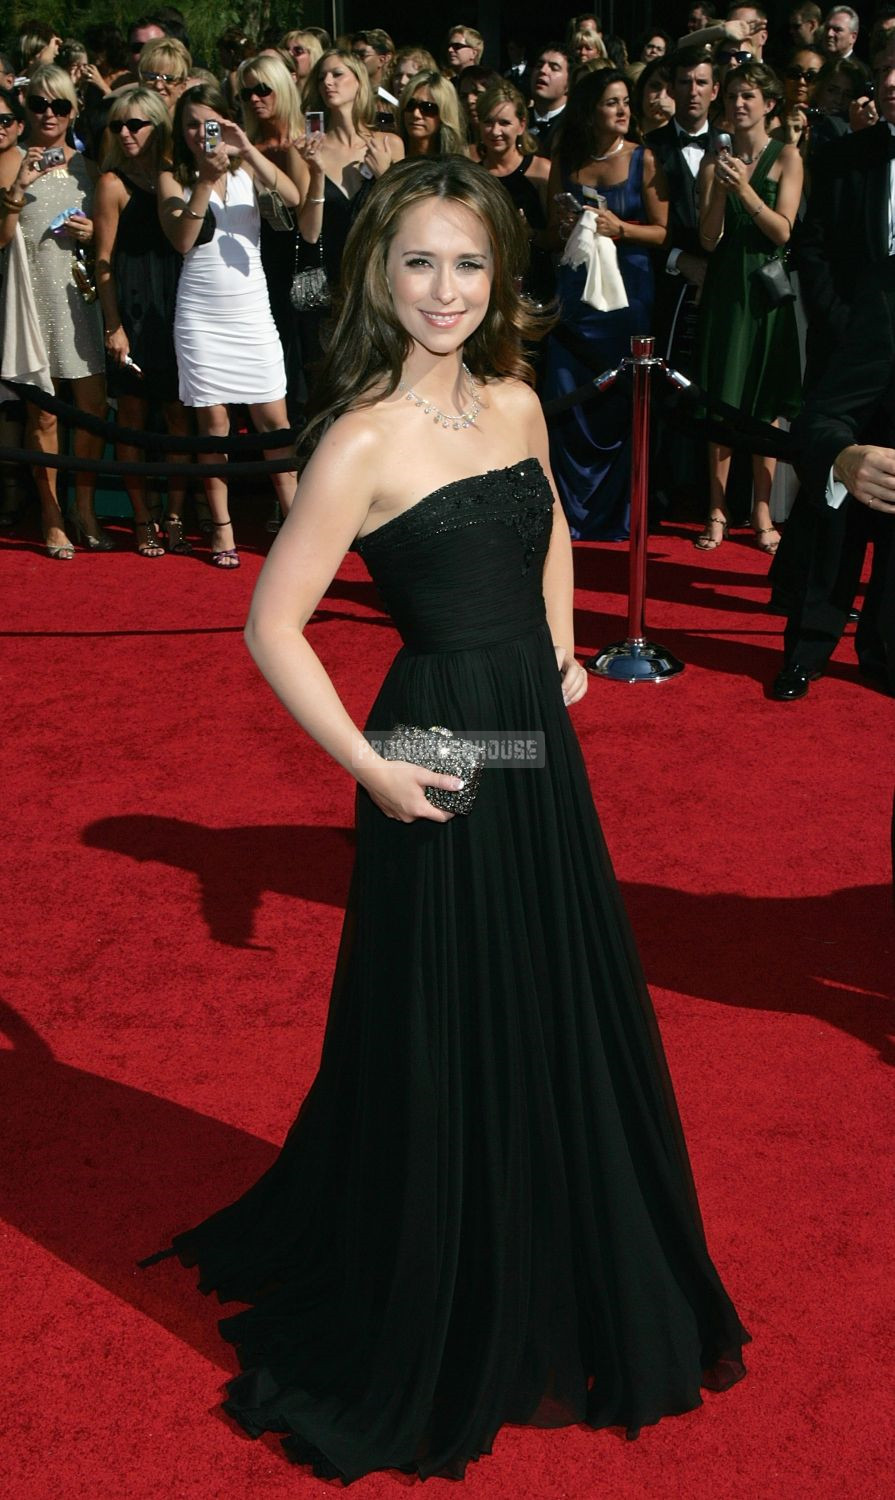 Ruched Black Chiffon Princess Strapless Sequins Celebrity Dress - Promdresshouse.com